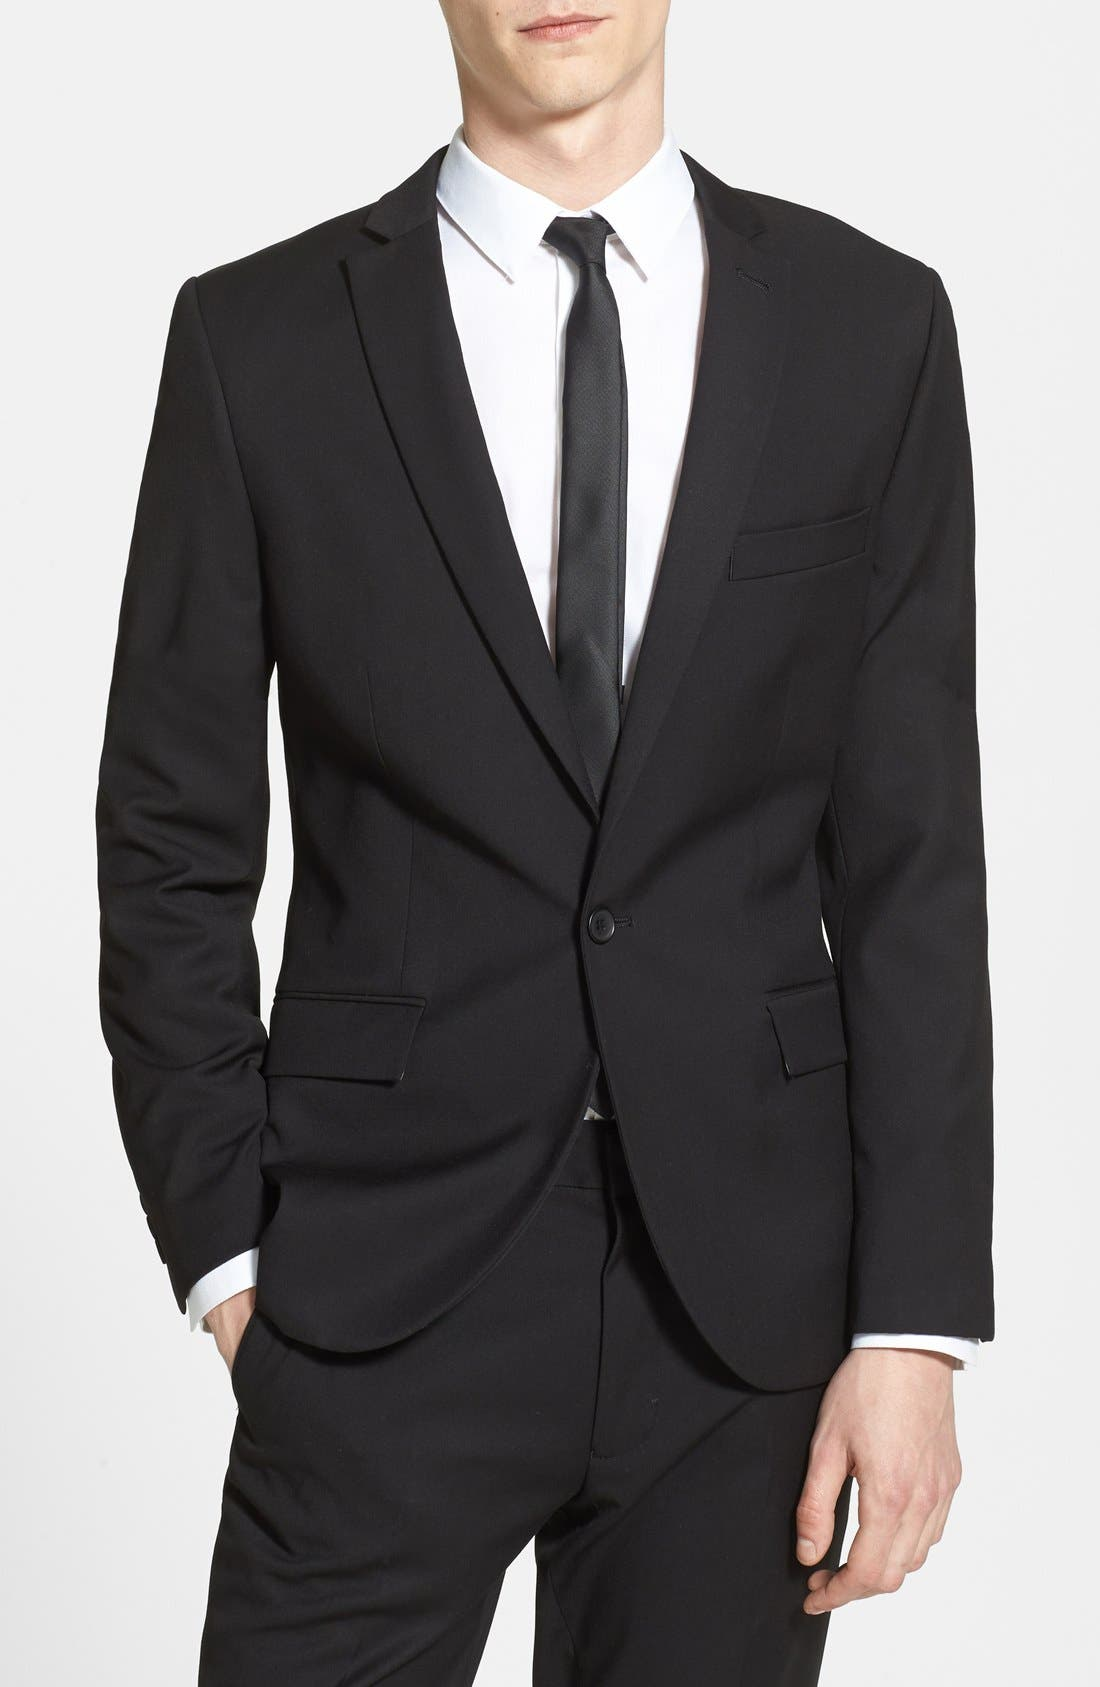 Main Image - Topman Black Textured Skinny Fit Suit Jacket